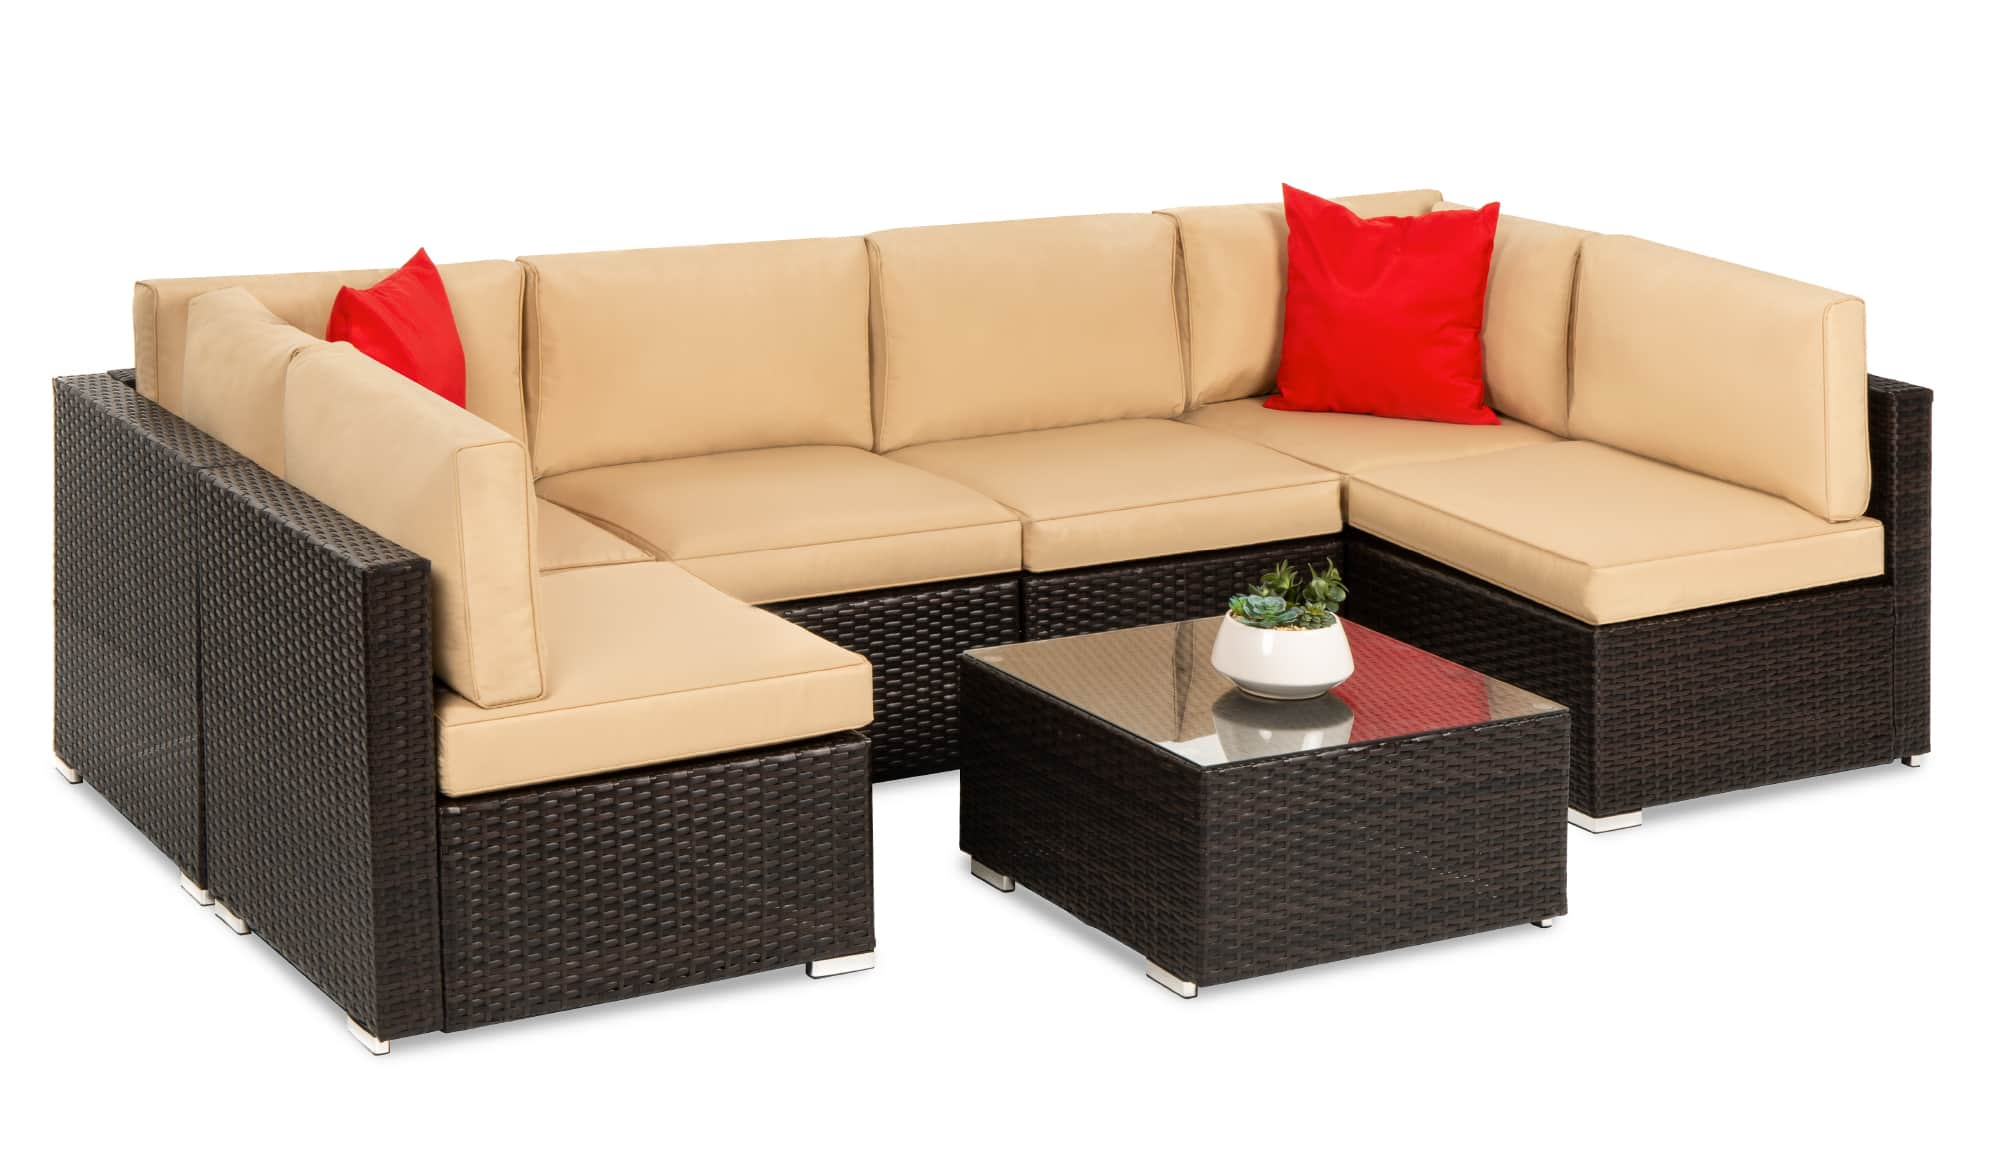 Patio Furniture at Walmart